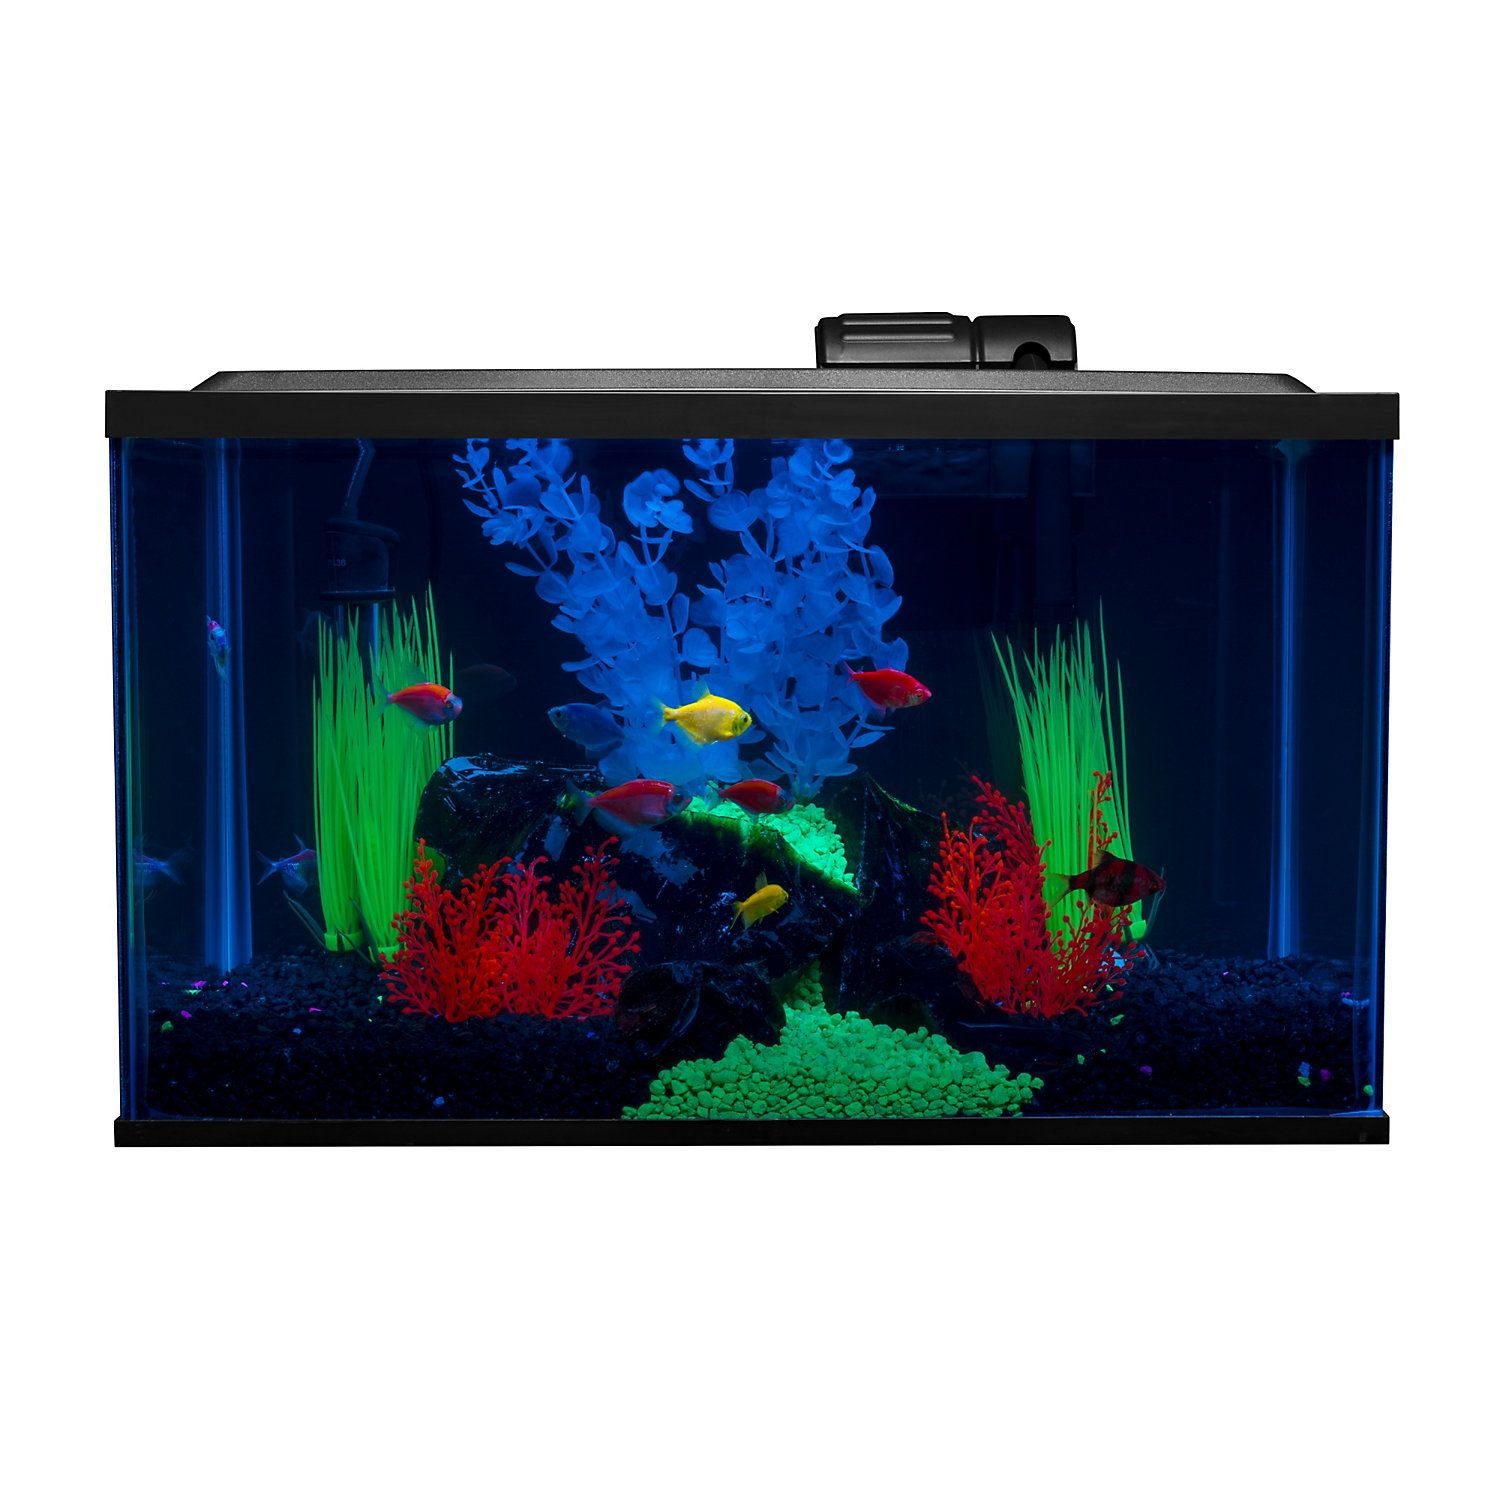 Jbj Rimless Desktop 10 Gallon Flat Panel Aquarium W Lyra Led Light On Sale 219 97 Living Room Decor Apartment Online Store Design Fish Tank